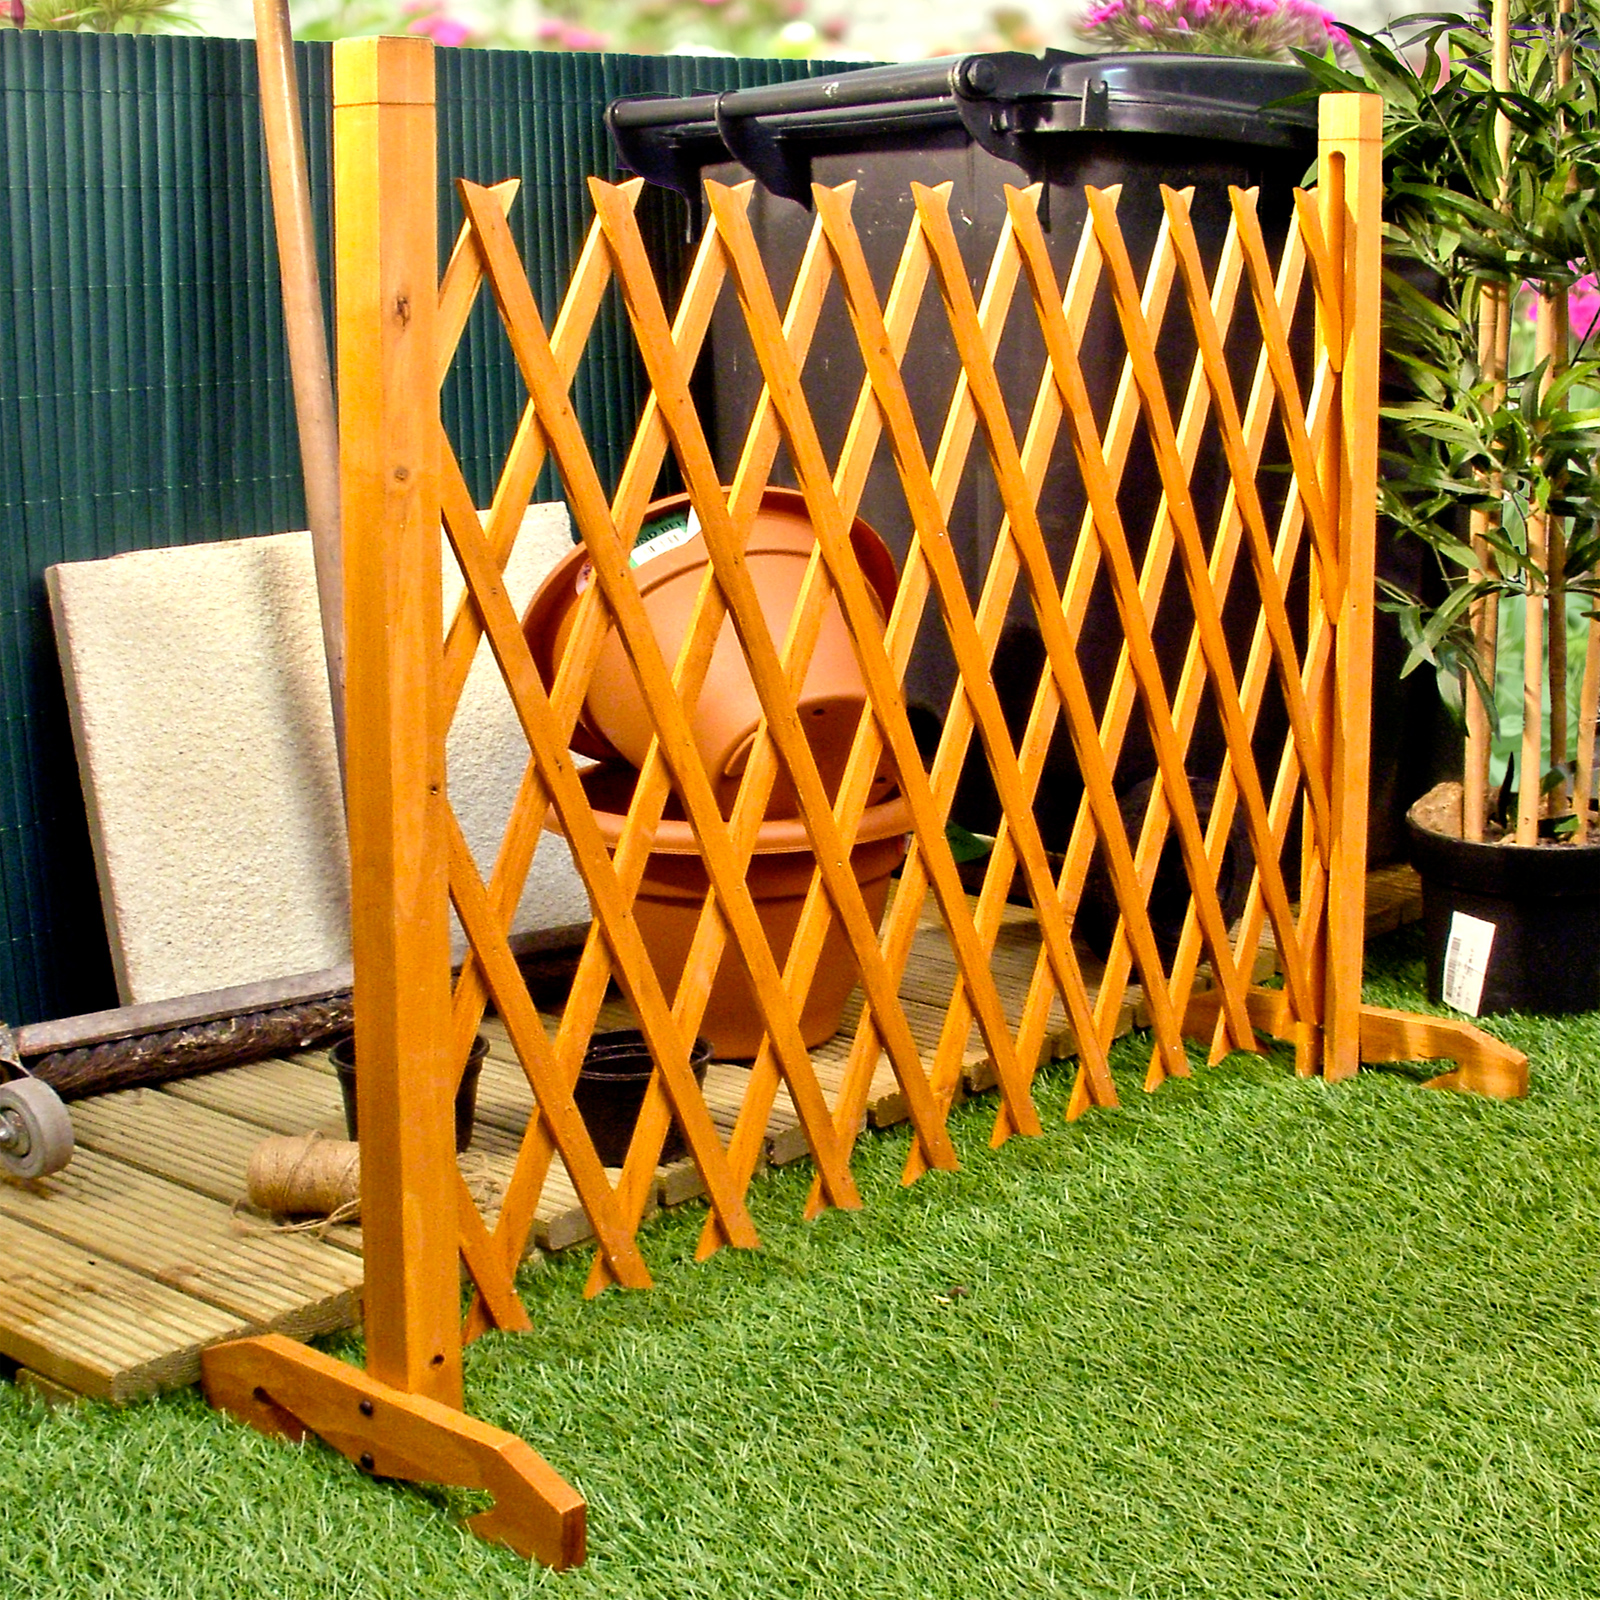 Expanding fence garden screen trellis style expands to 6 39 2 for Wooden garden screen designs